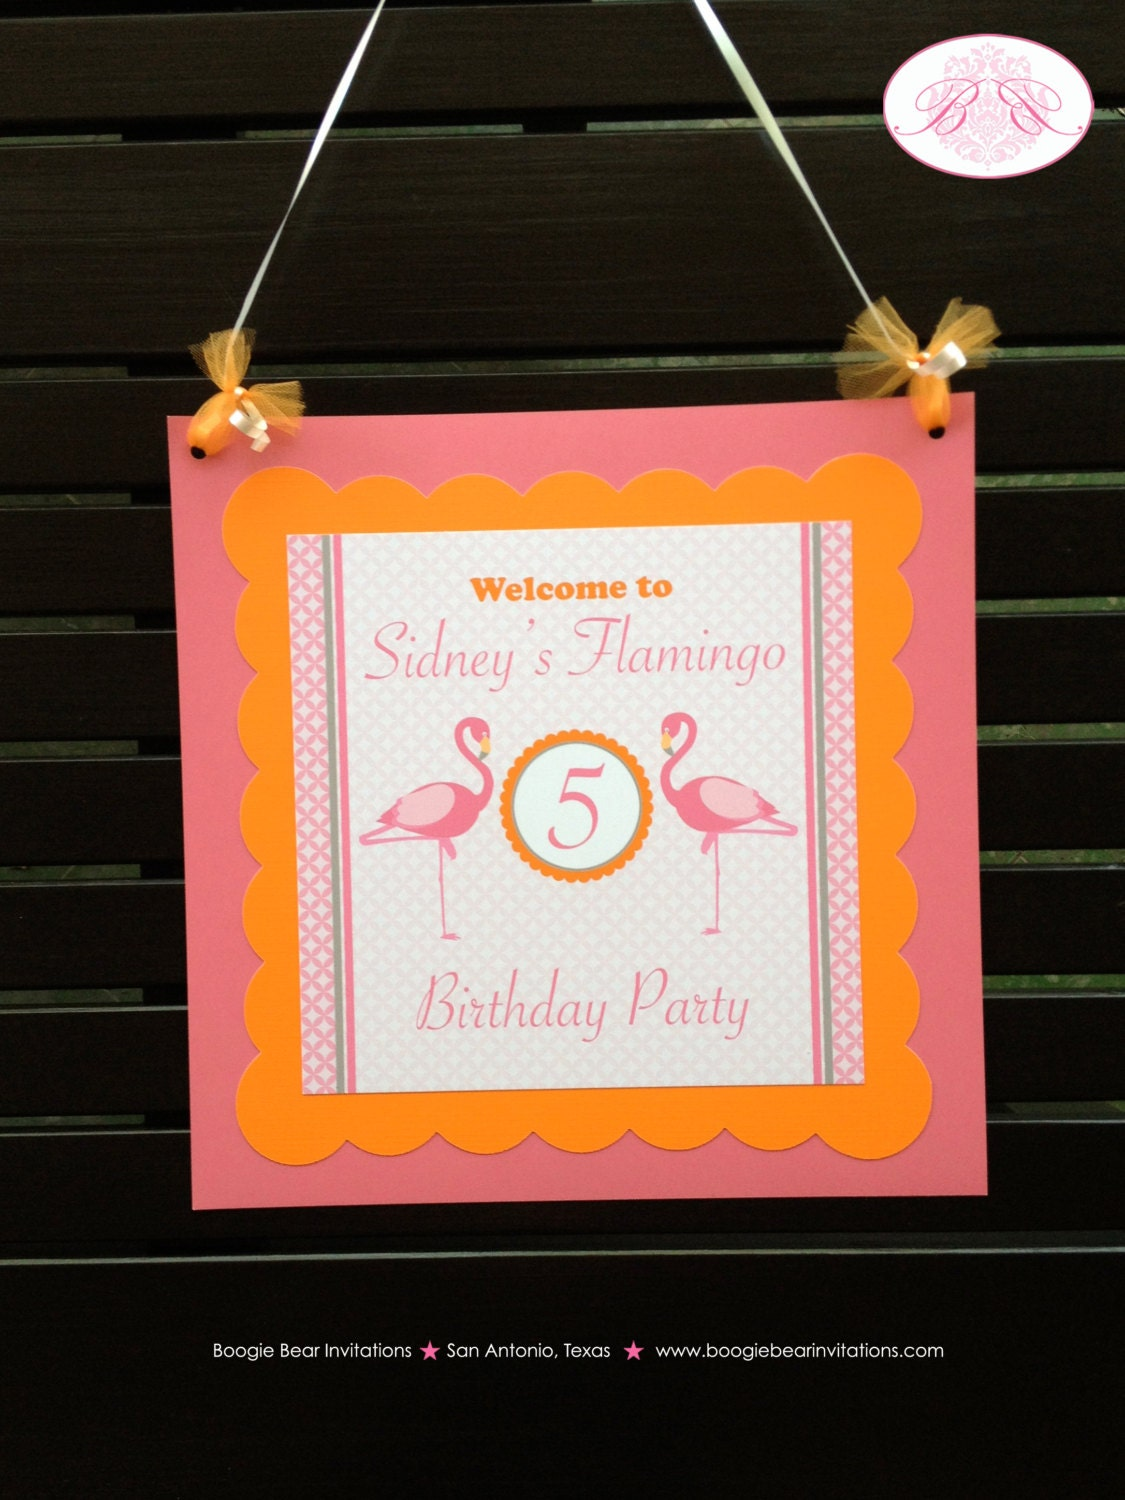 Pink Flamingo Birthday Party Door Banner Flamingle Orange Tropical Girl Zoo Miami Beach Florida Island Boogie Bear Invitations Sidney Theme